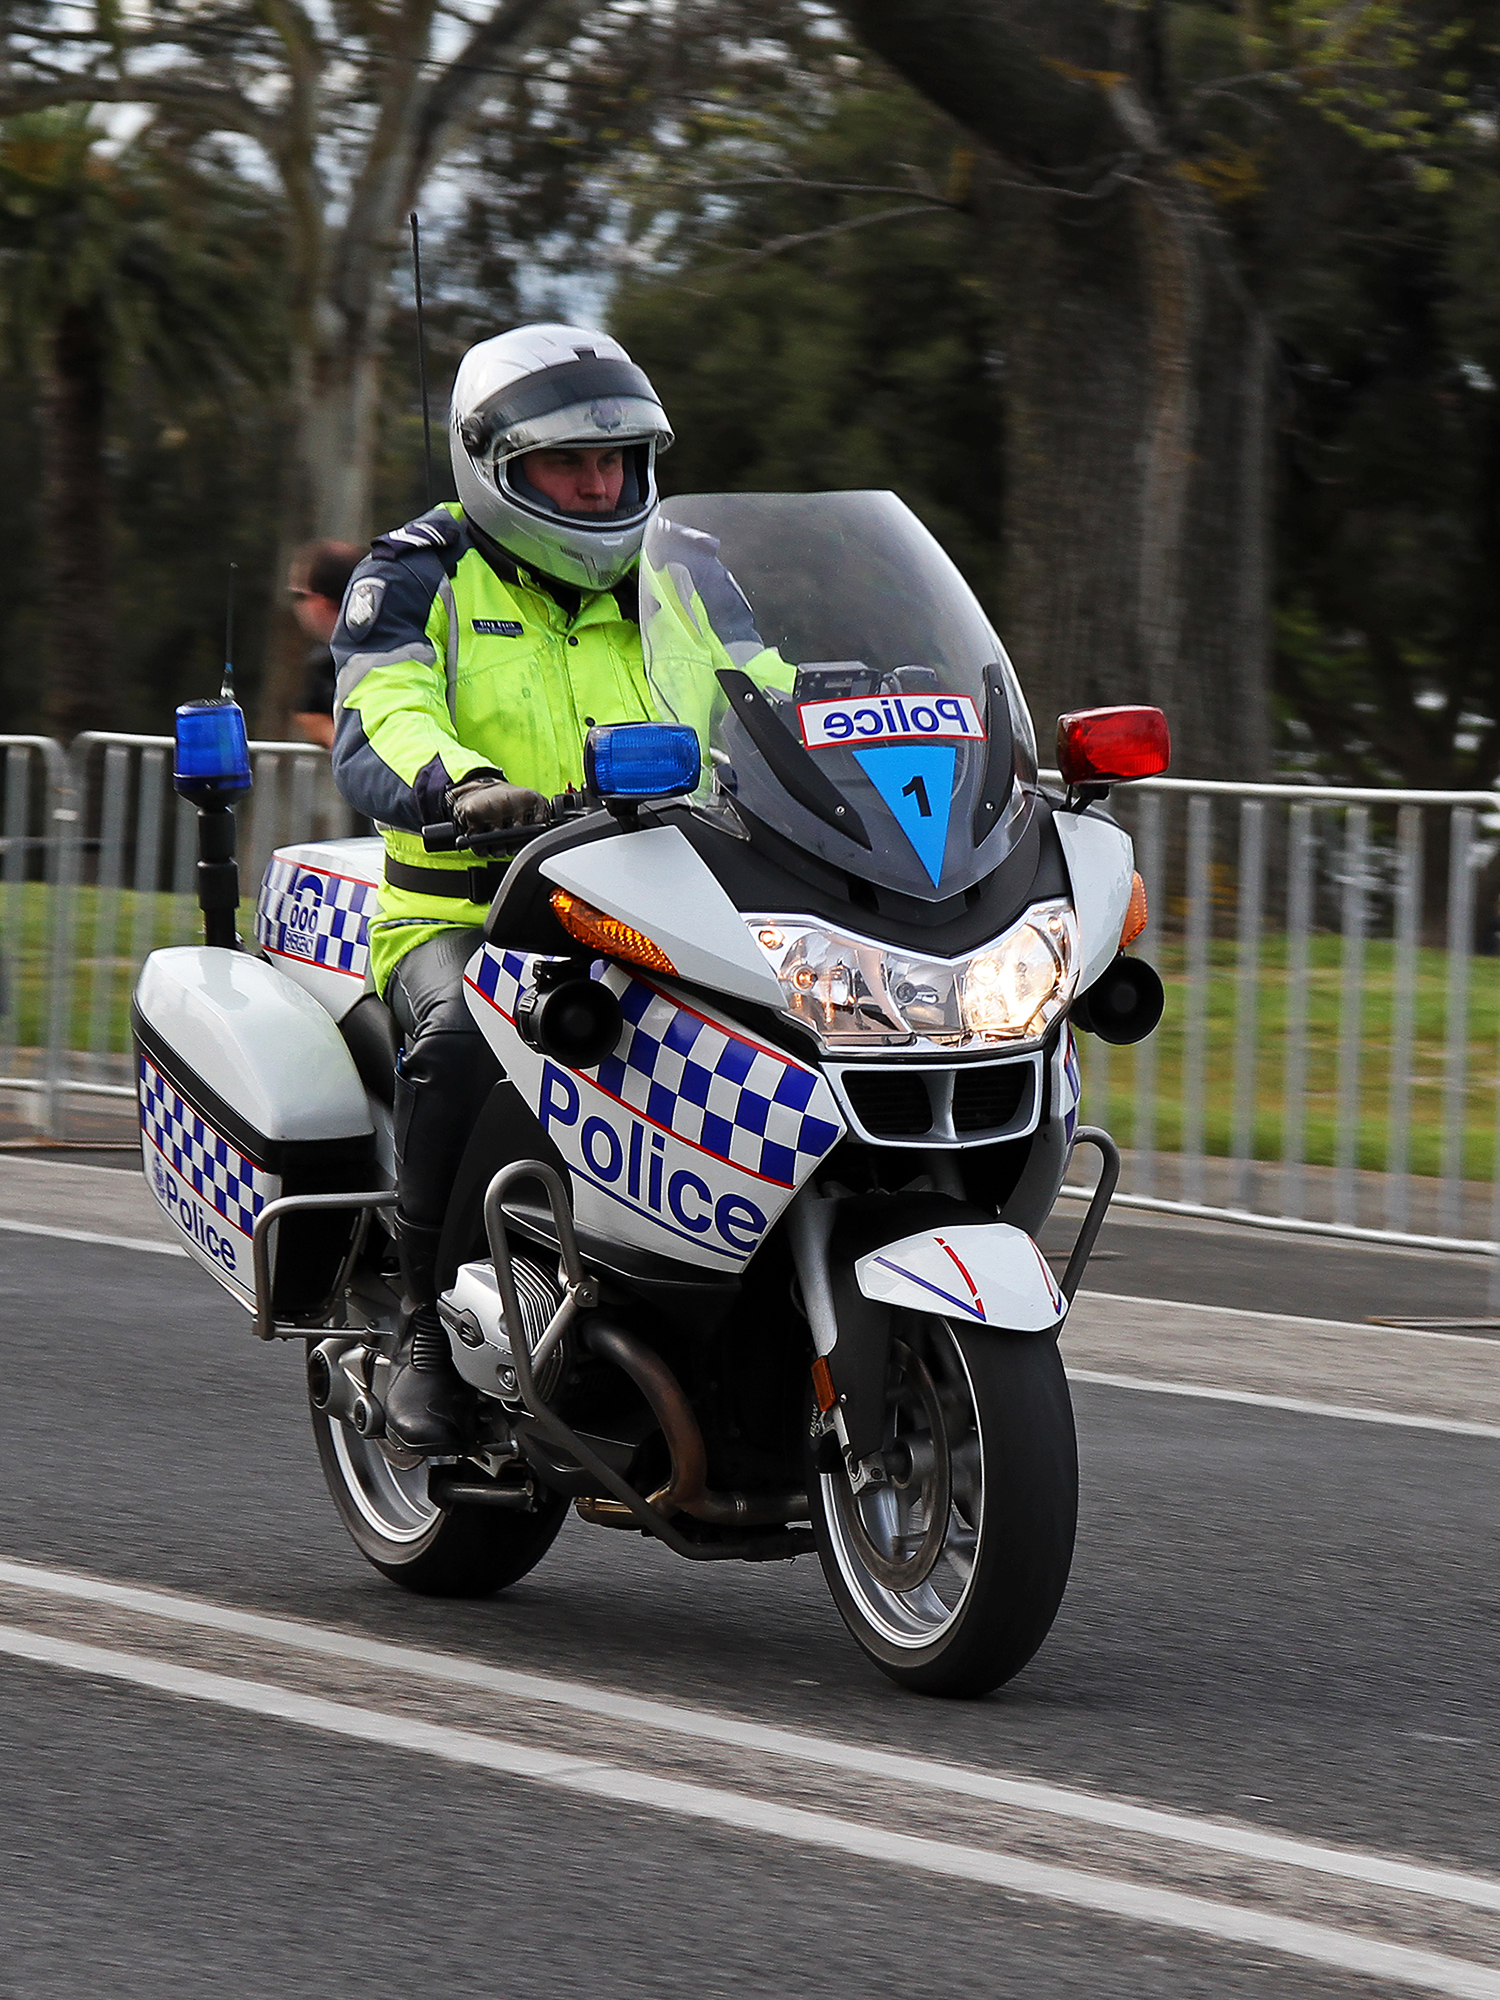 police police motorcycles are commonly used for patrols and escorts as seen here in